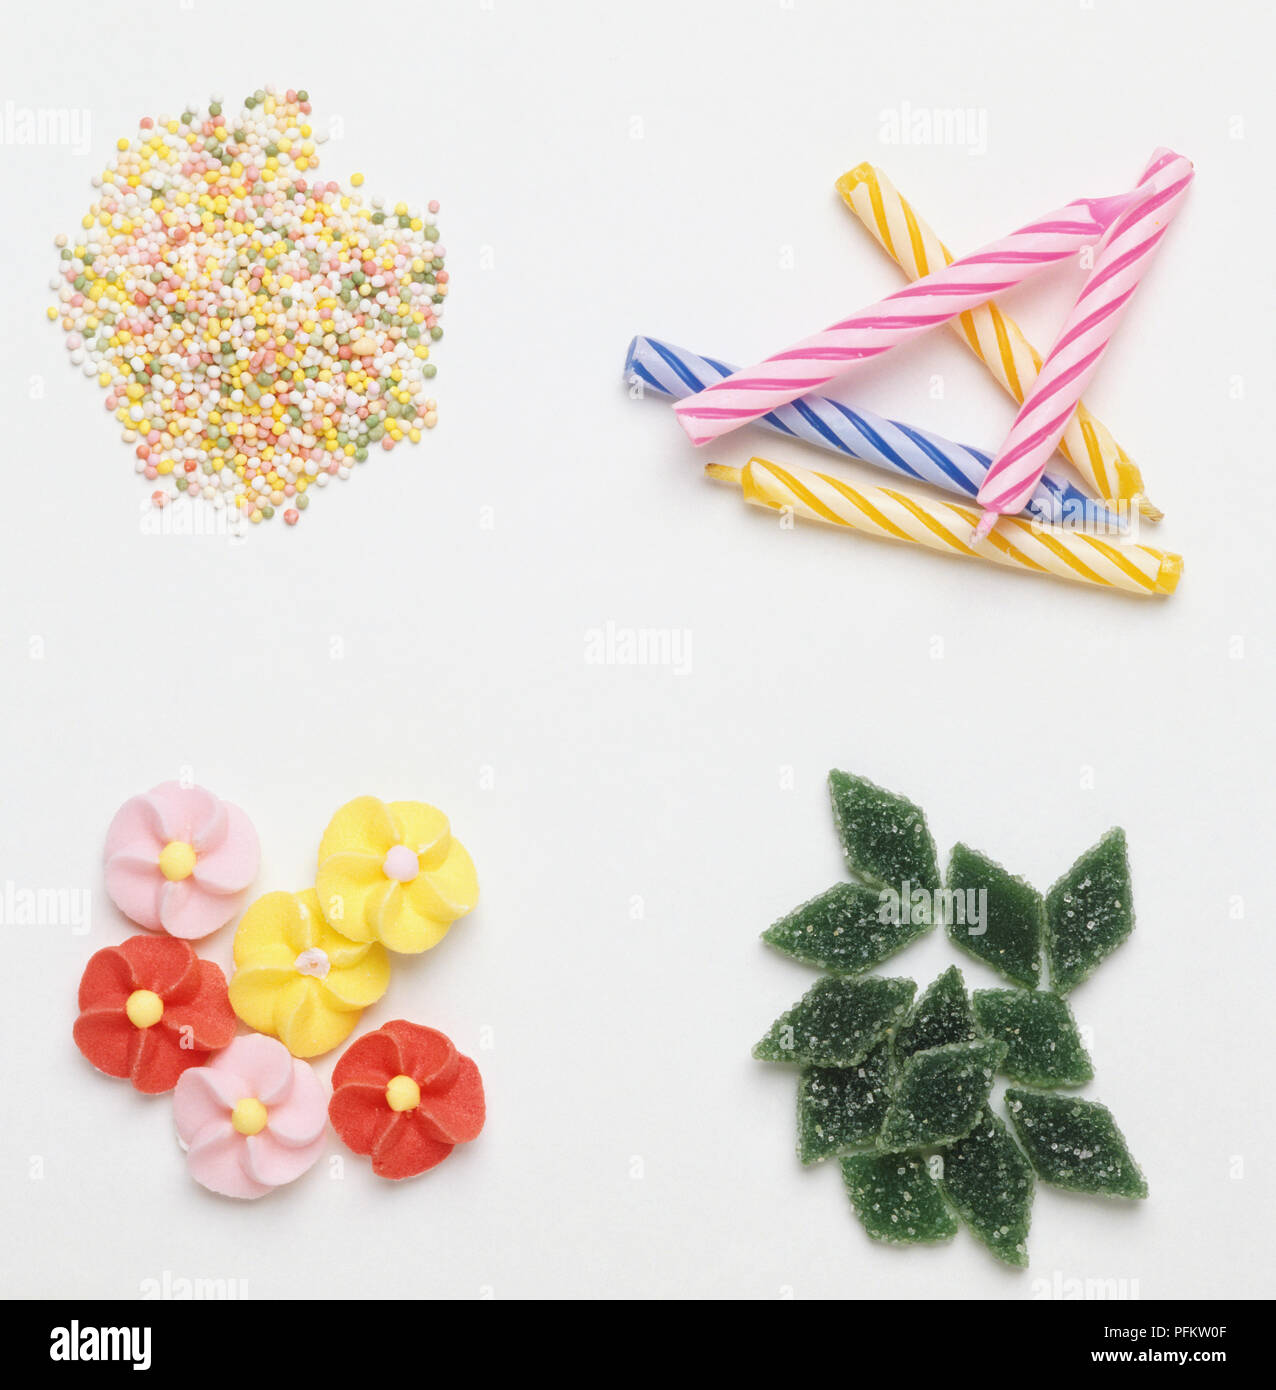 Selection Of Cake Decorations Sugared Green Diamond Sweets Marzipan Flowers Hundreds And Thousands Birthday Candles Close Up